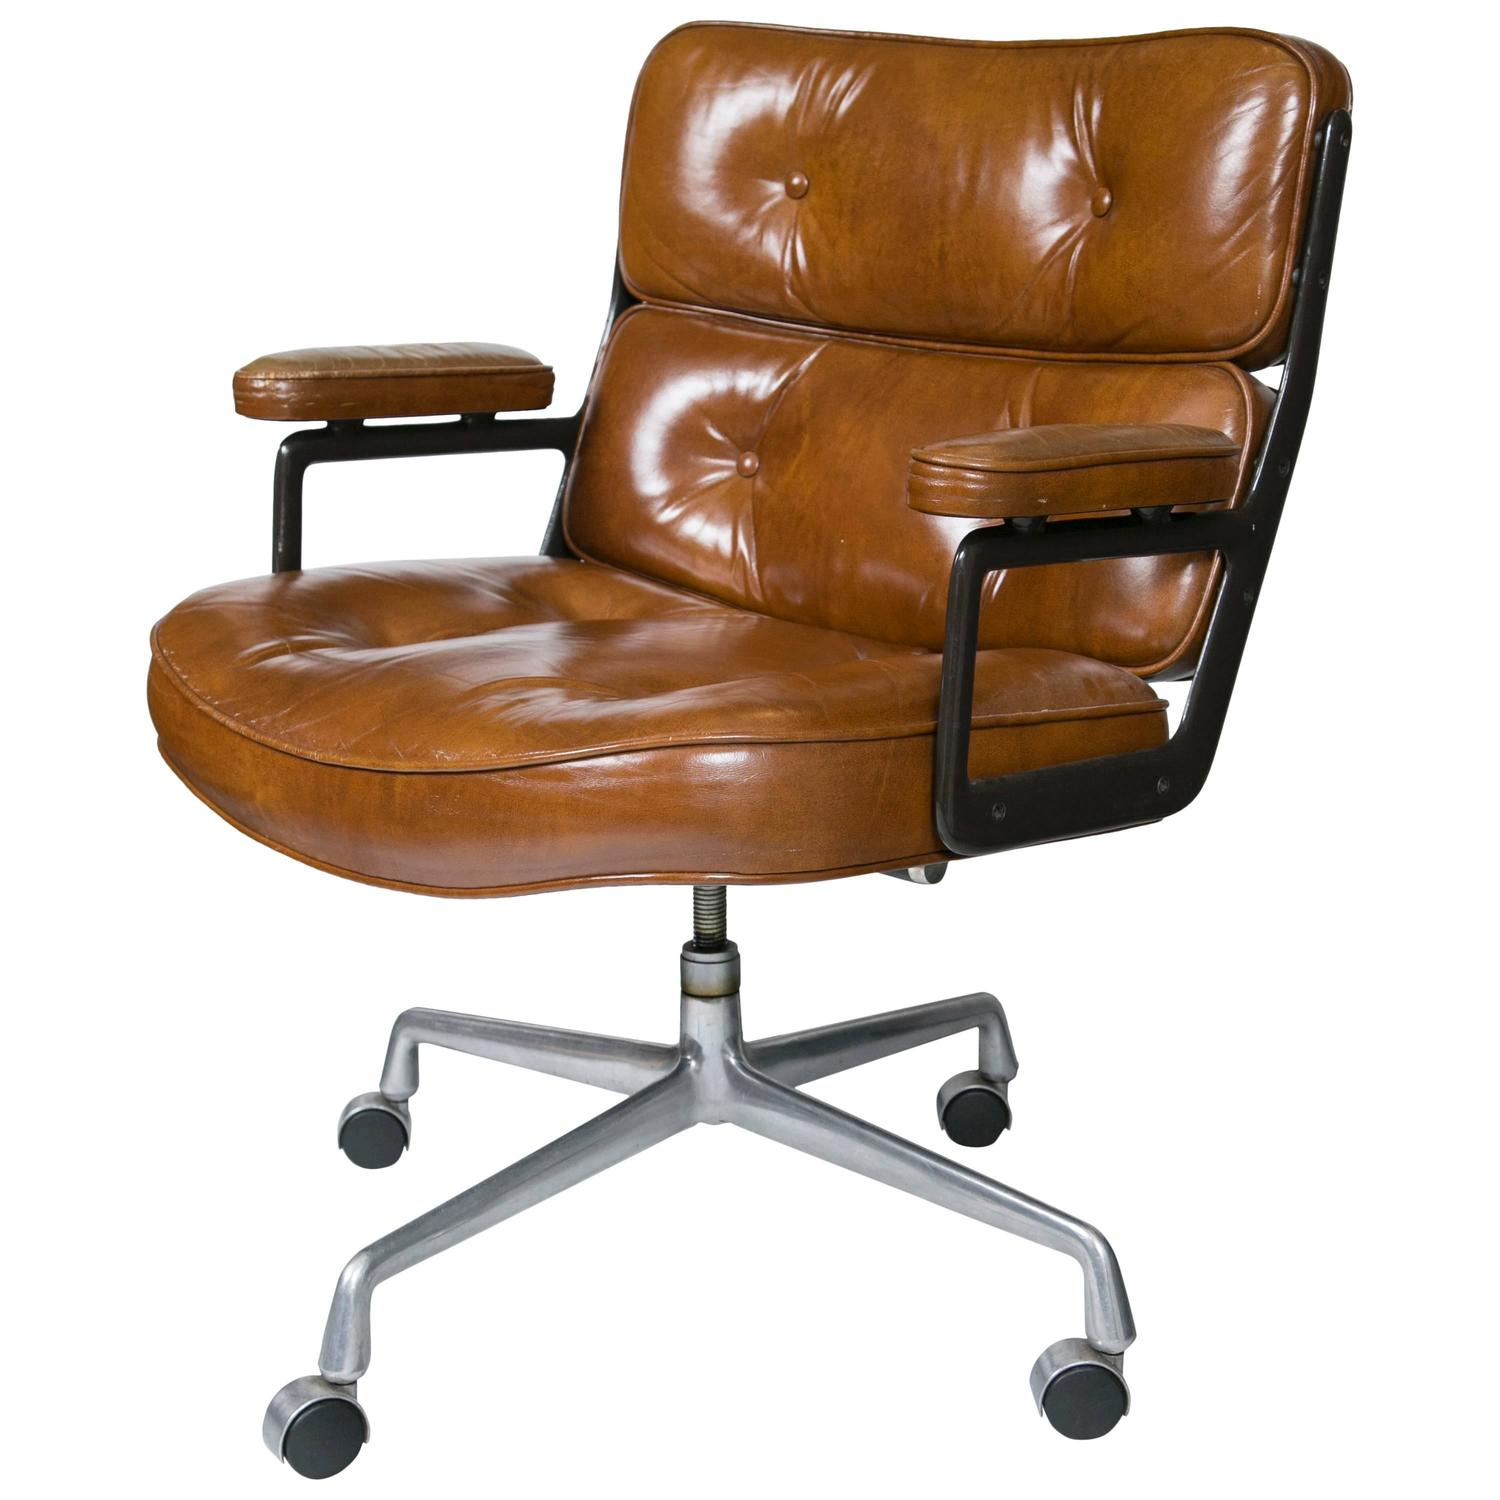 Herman Miller Eames Office Chair Eames Executive Chair By Herman Miller At 1stdibs